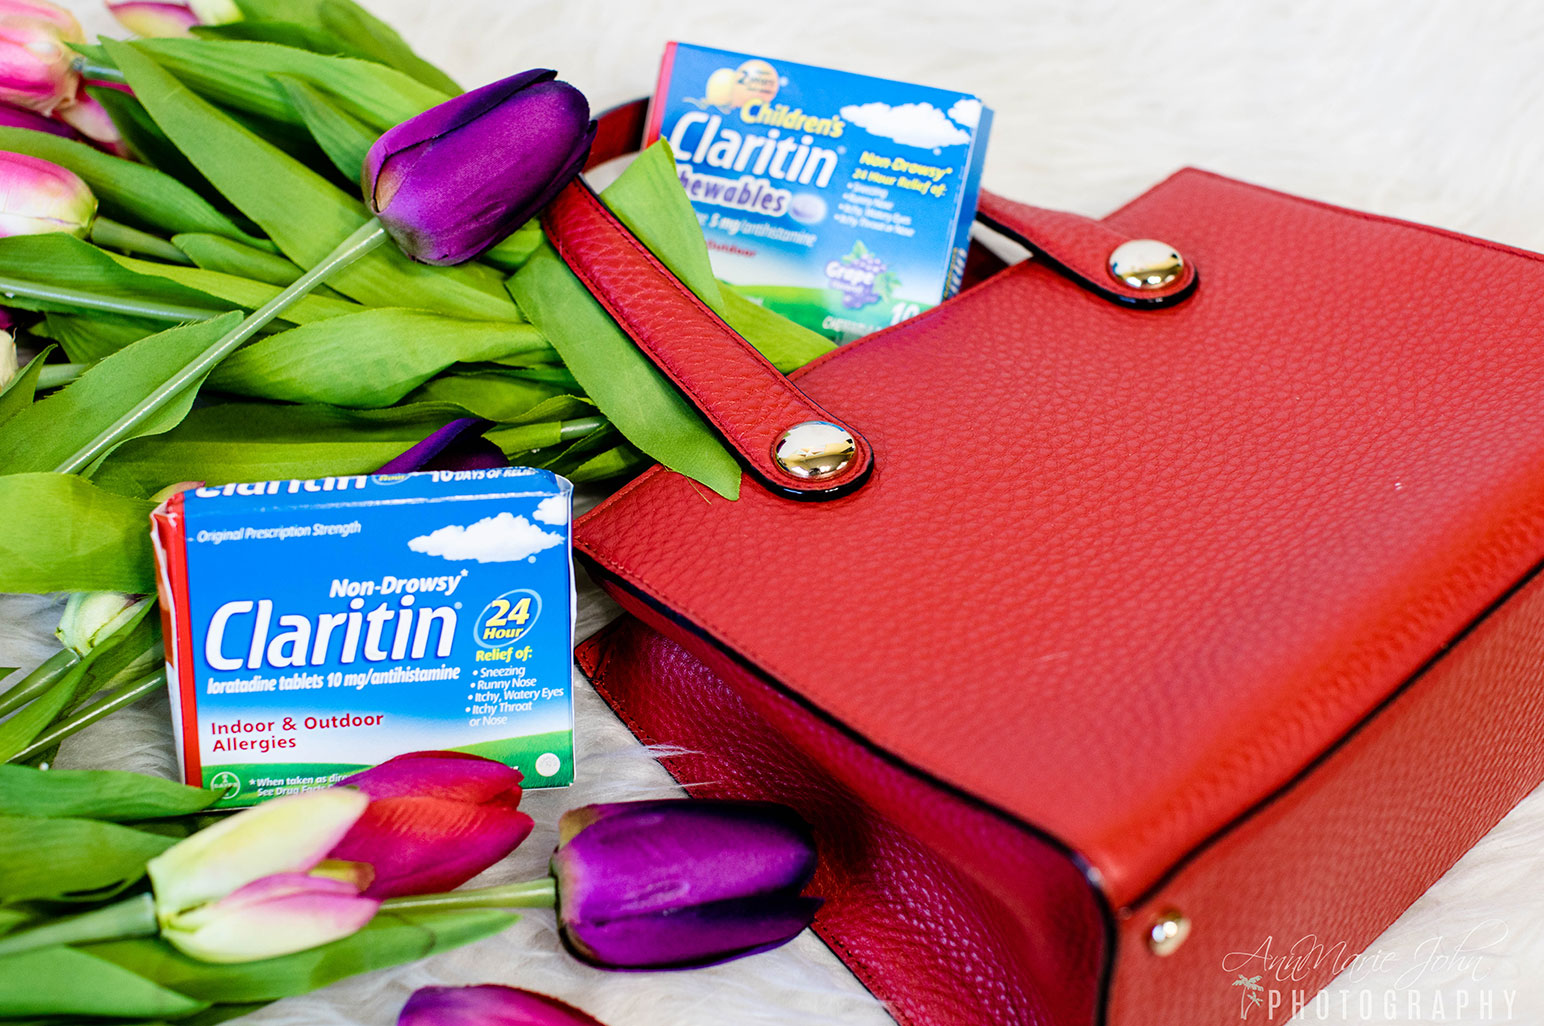 Do Something Different This Spring, Get Up and Get Outside ~ #Claritin #20MinutesofSpring